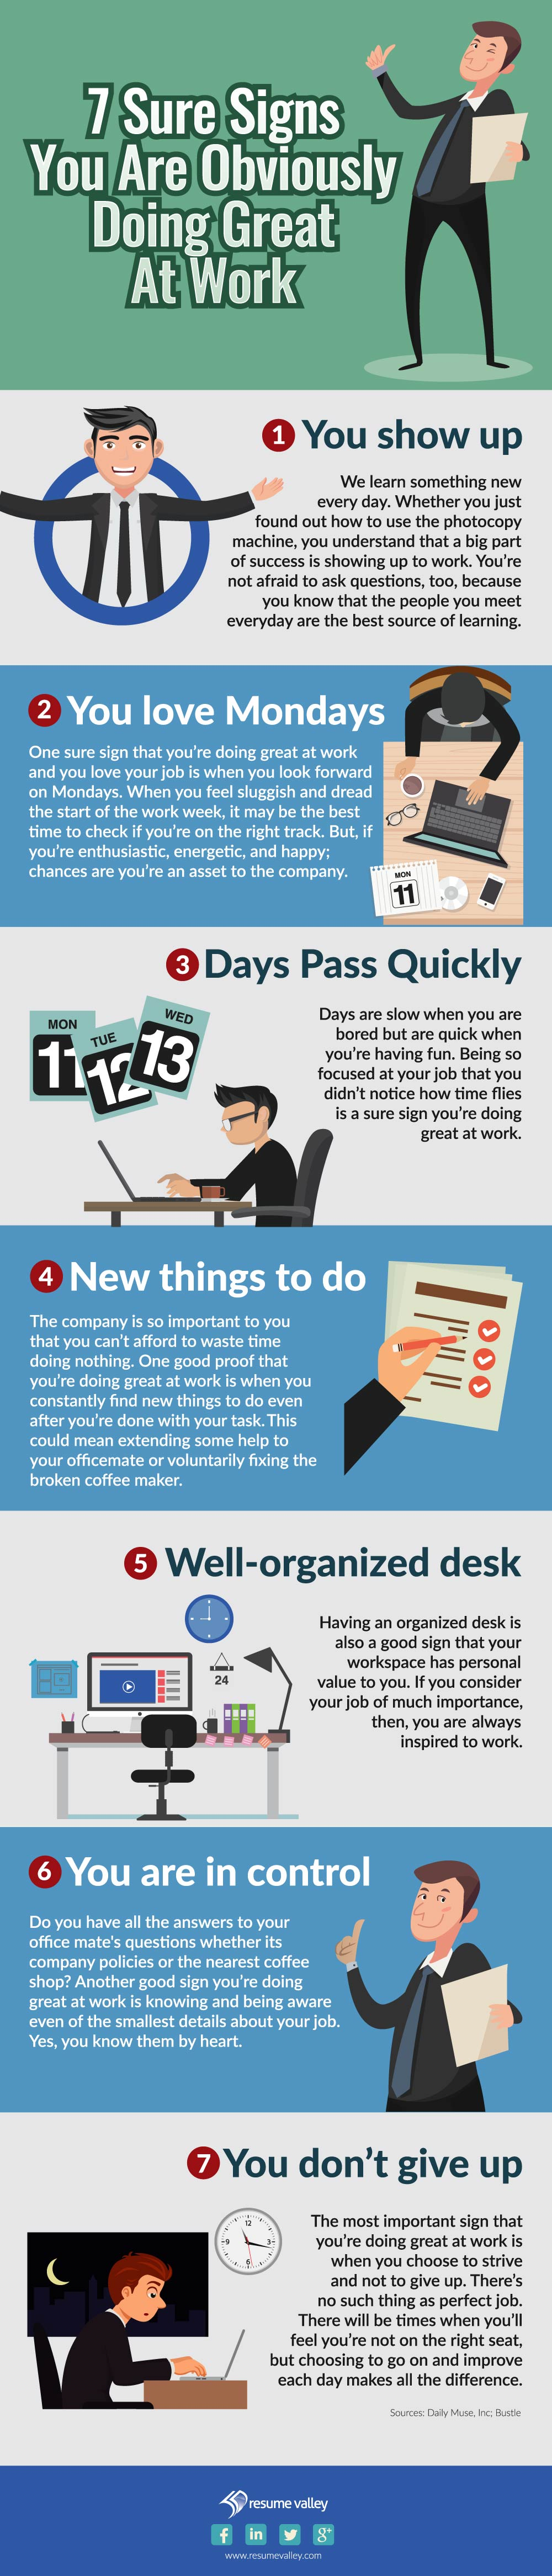 doing great at work: infographic